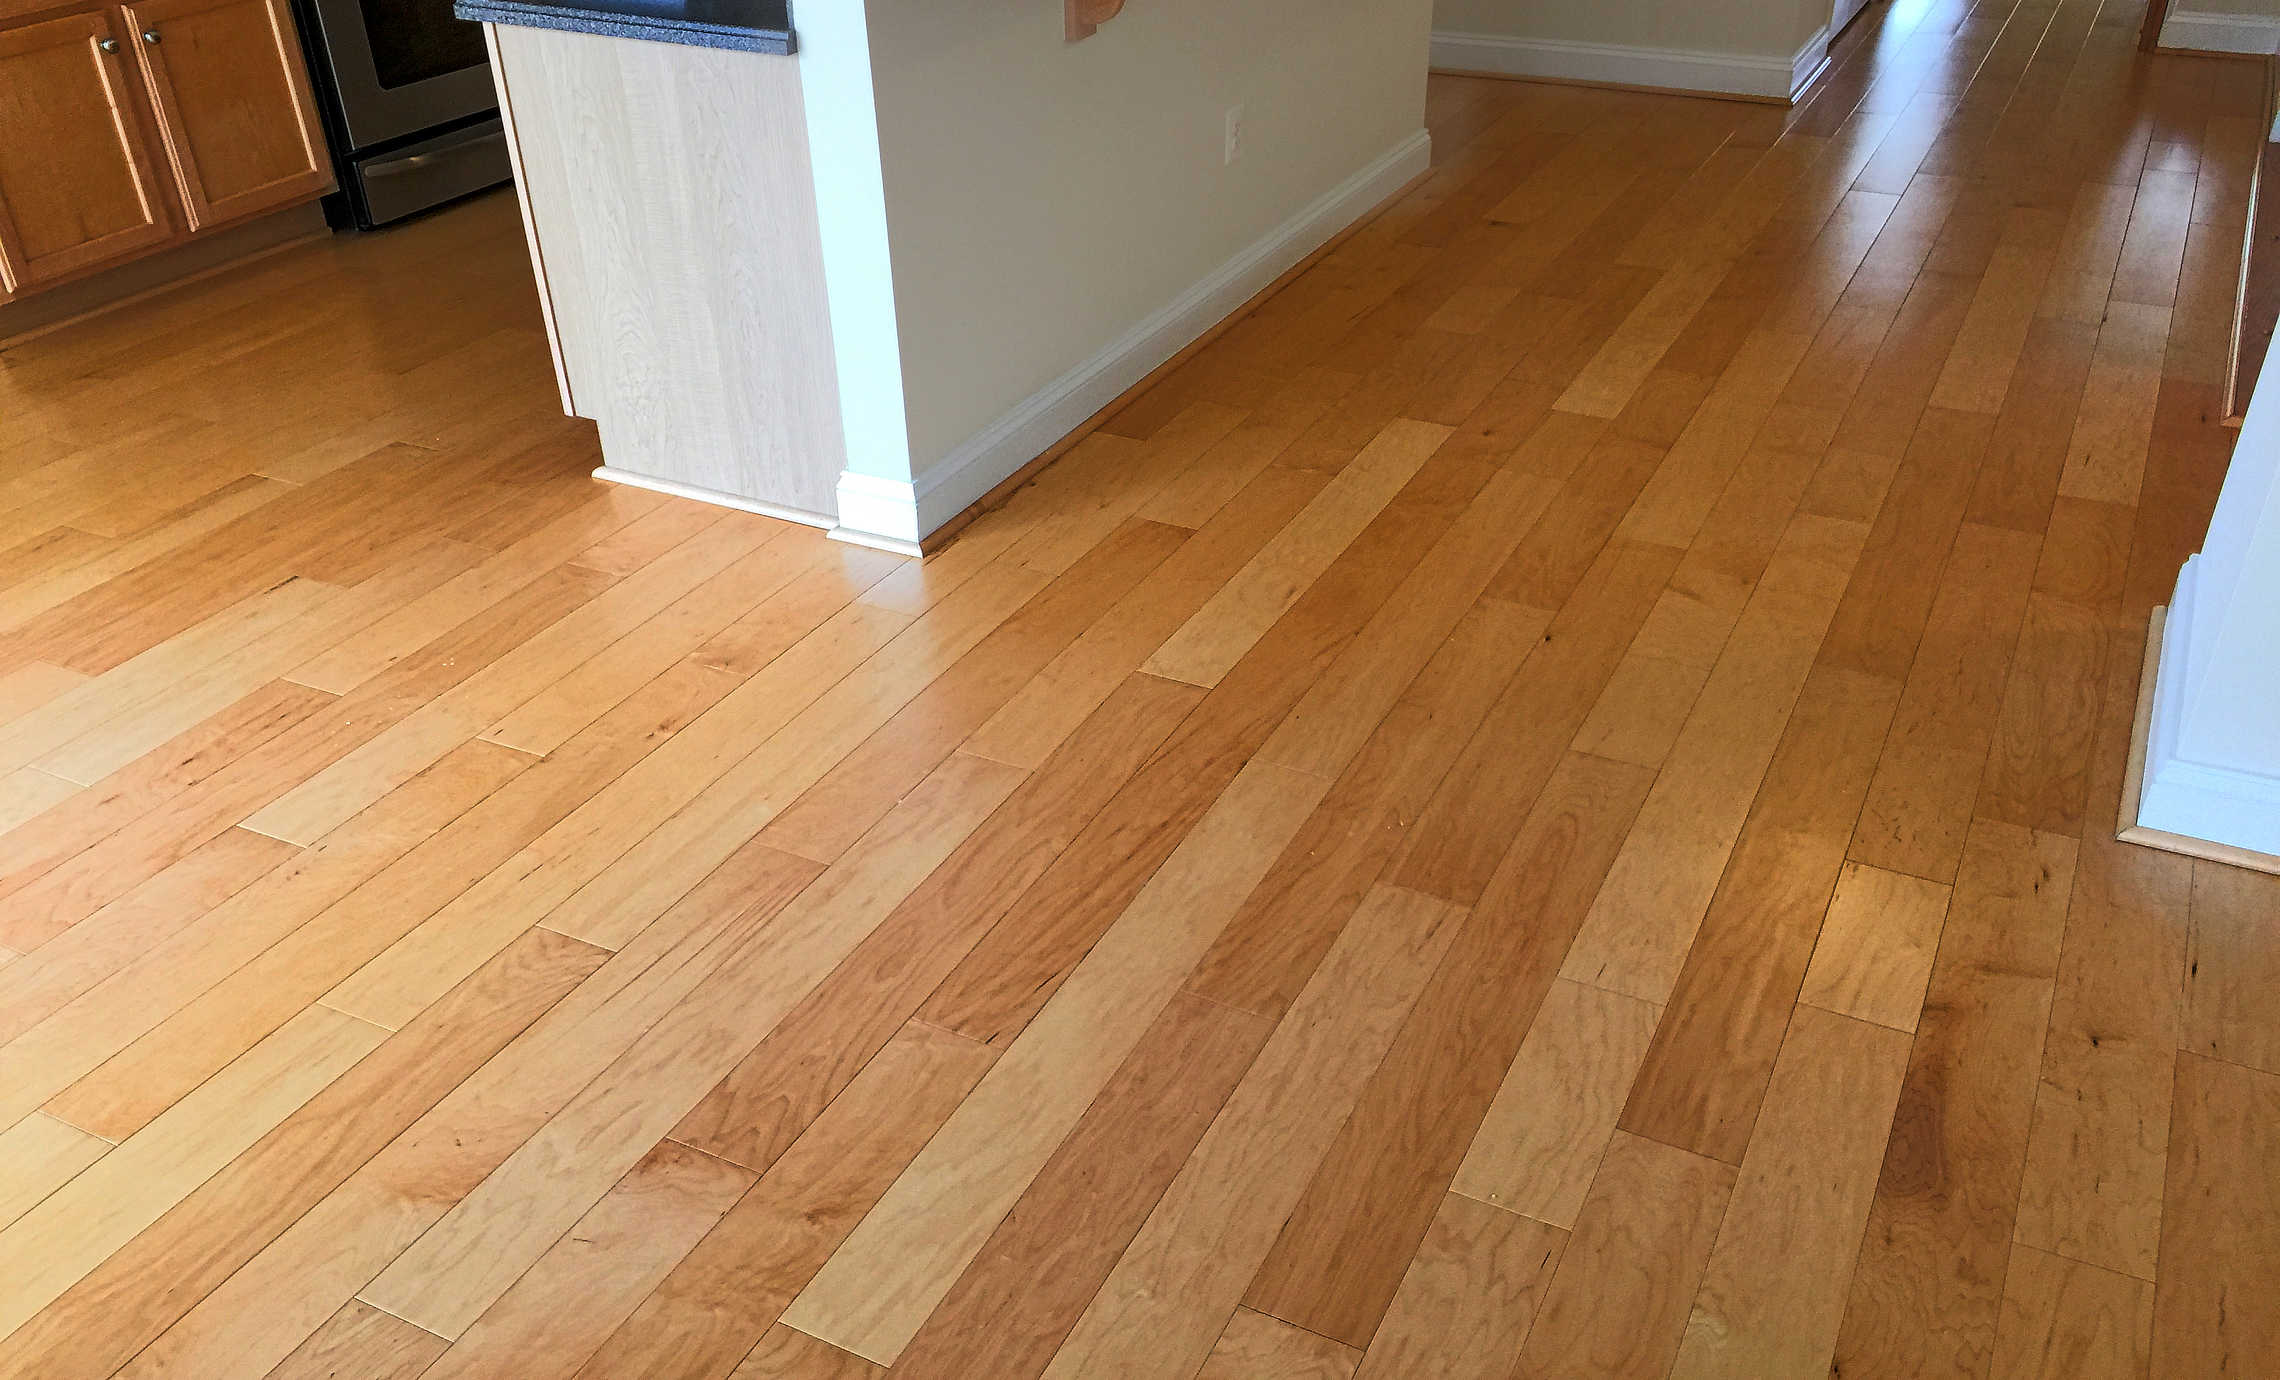 Hardwood floors Sanitize 4 Serenity cleaned and polished